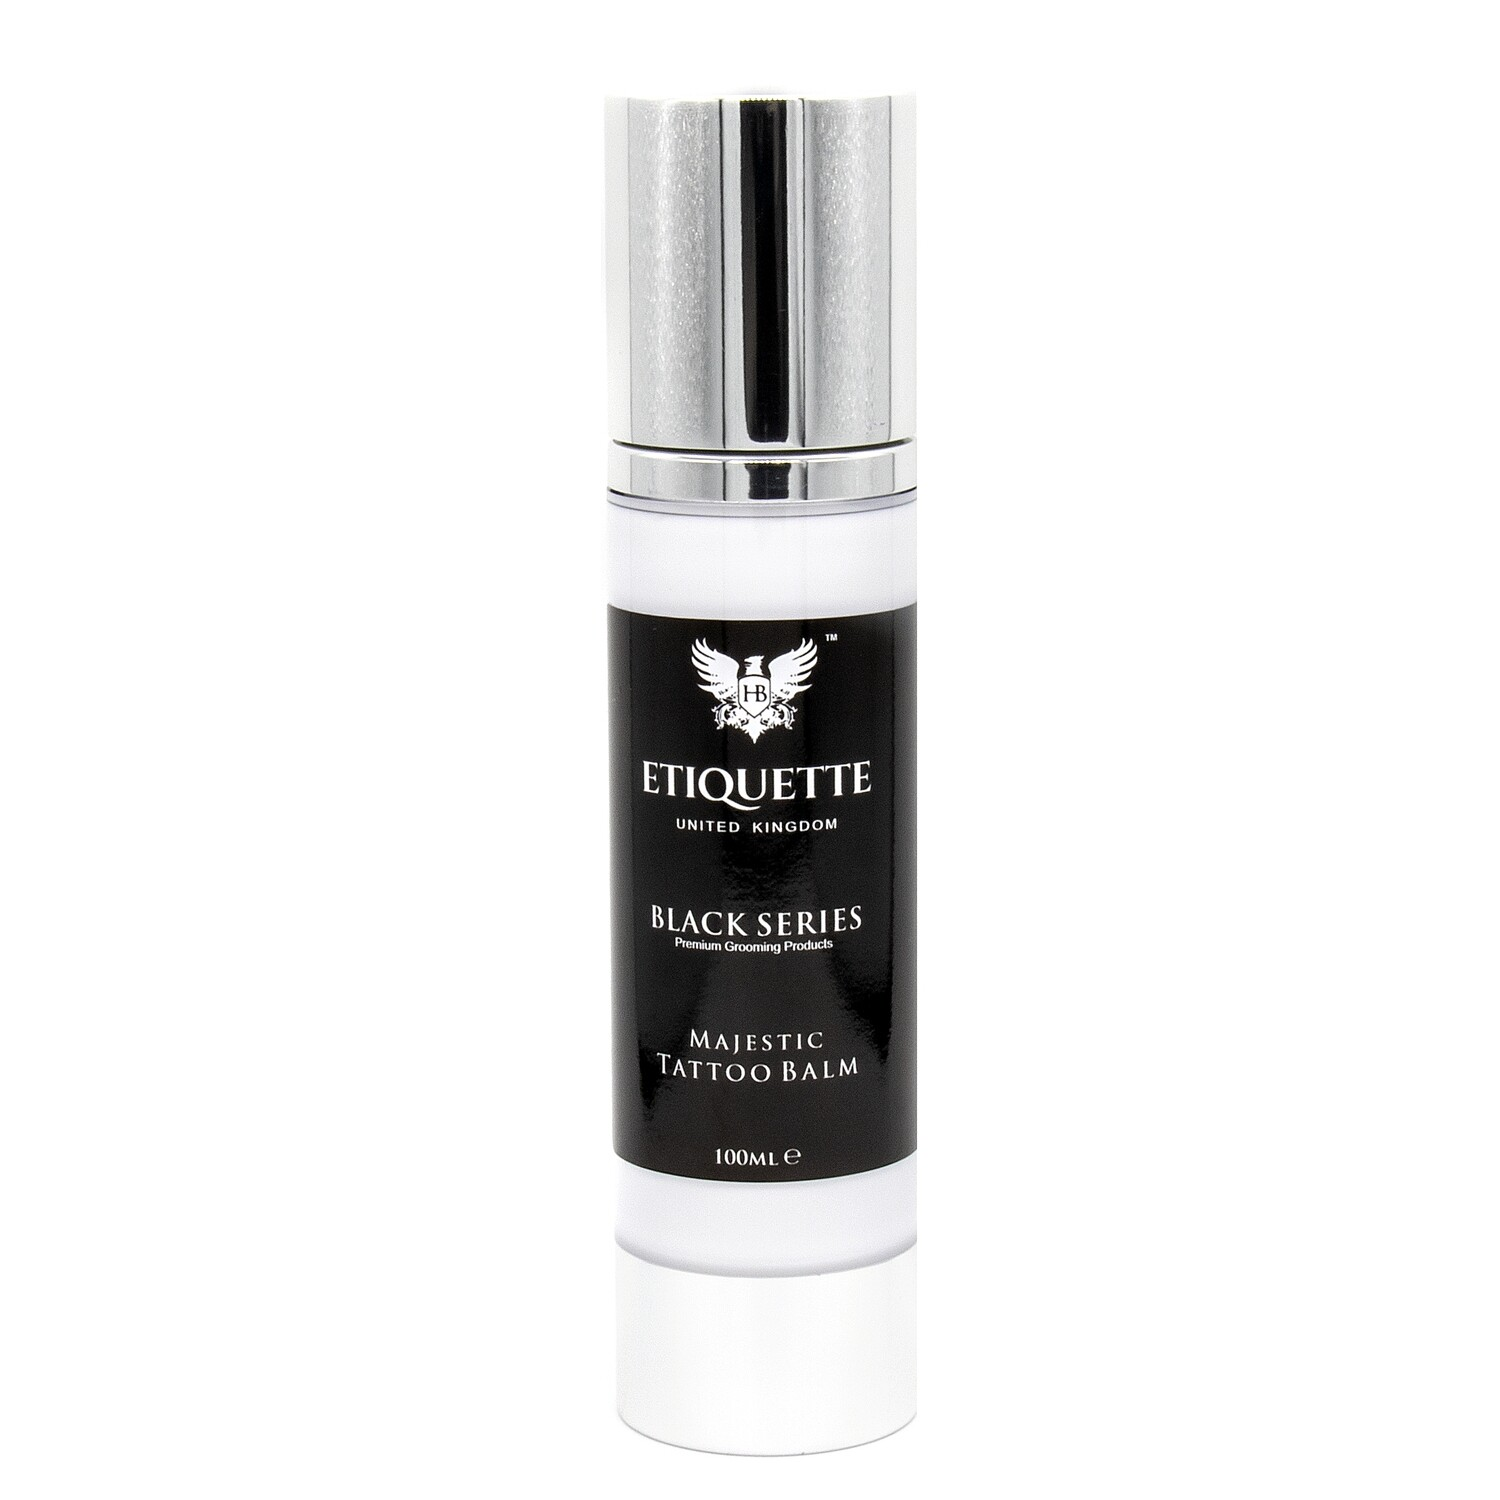 Hairbond® Etiquette - Black Series - Body (Majestic 100ml Tattoo Balm